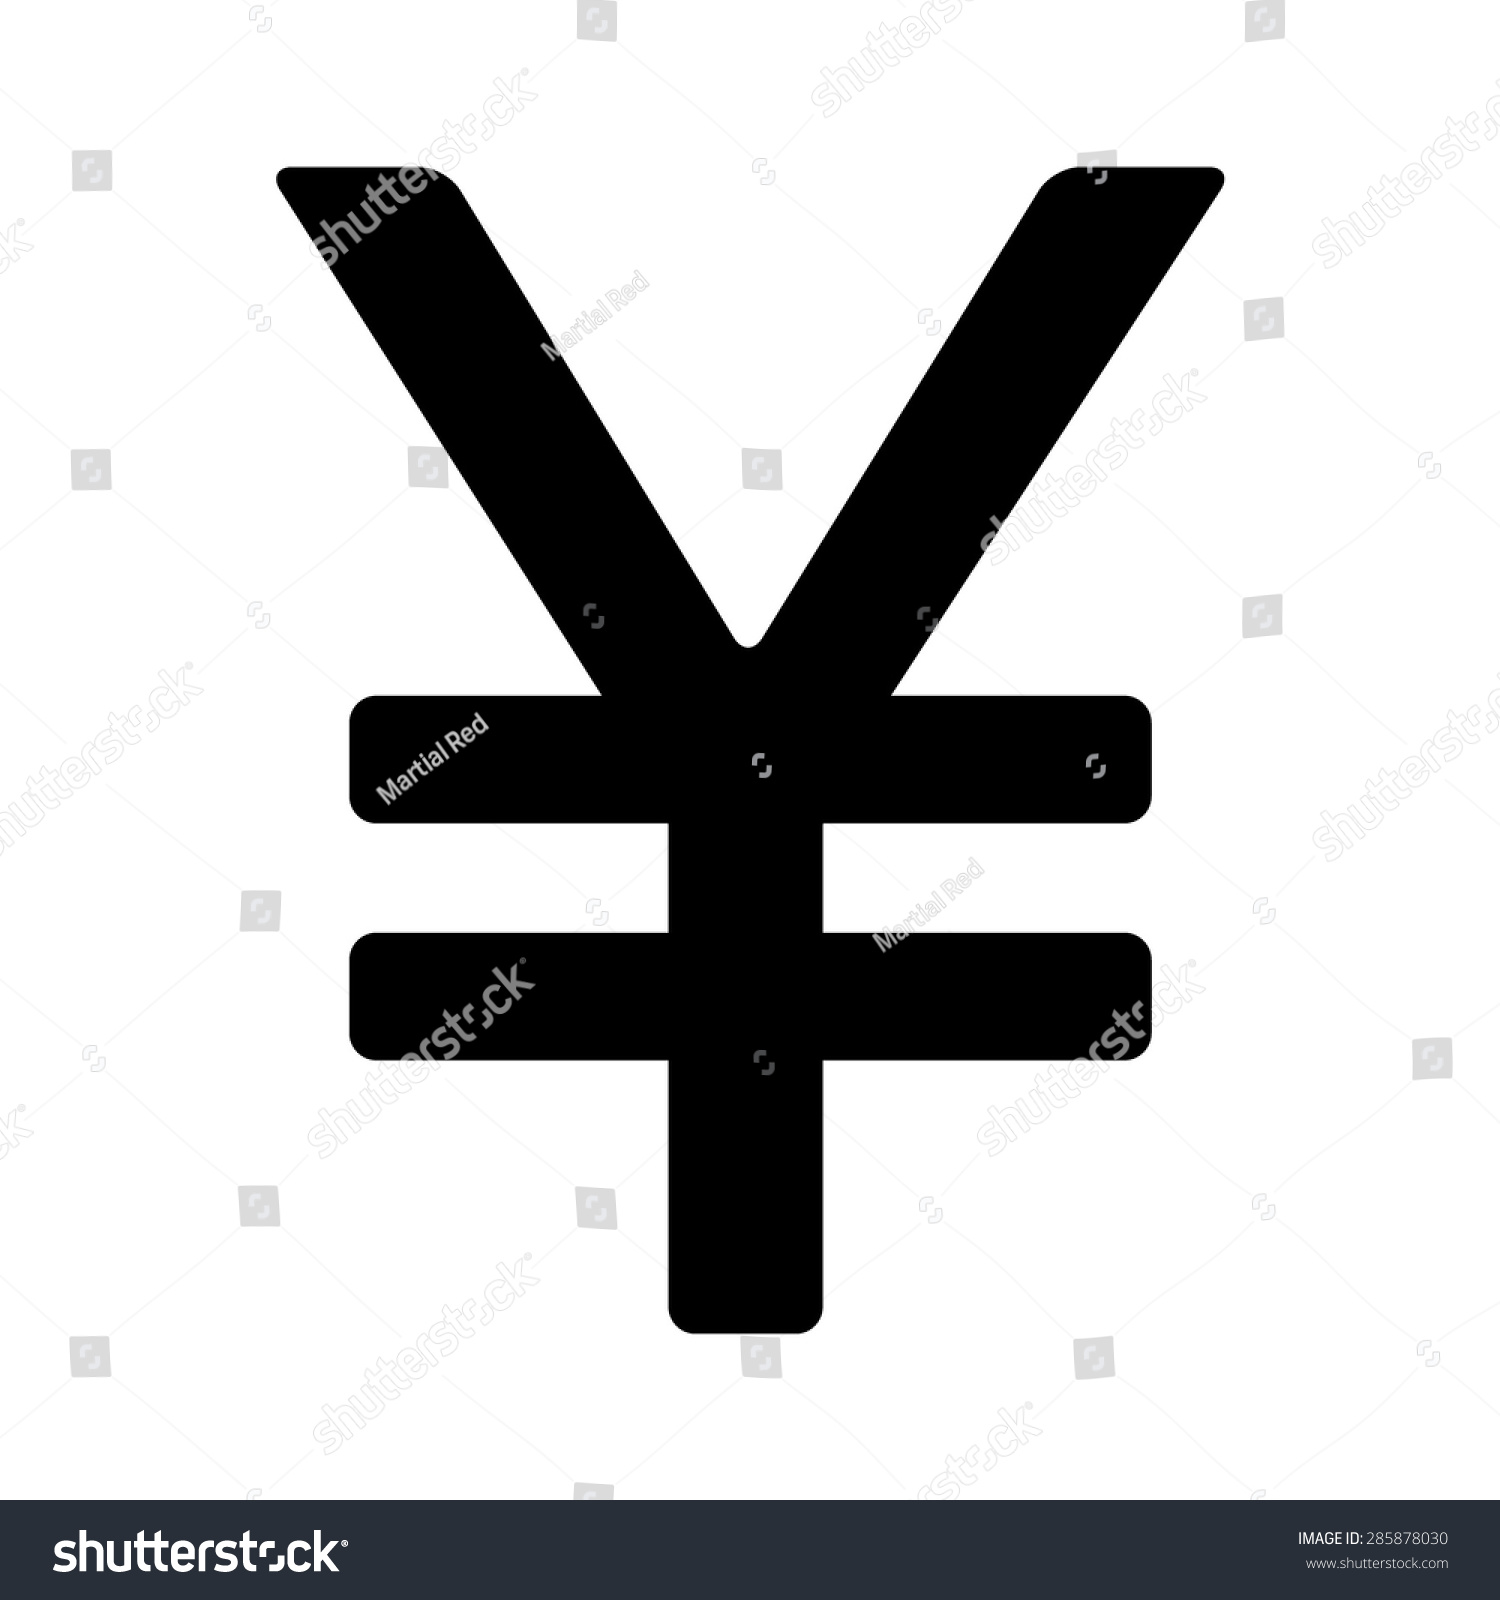 Japanese yen chinese yuan currency symbol stock vector 285878030 japanese yen or chinese yuan currency symbol flat icon for apps and websites biocorpaavc